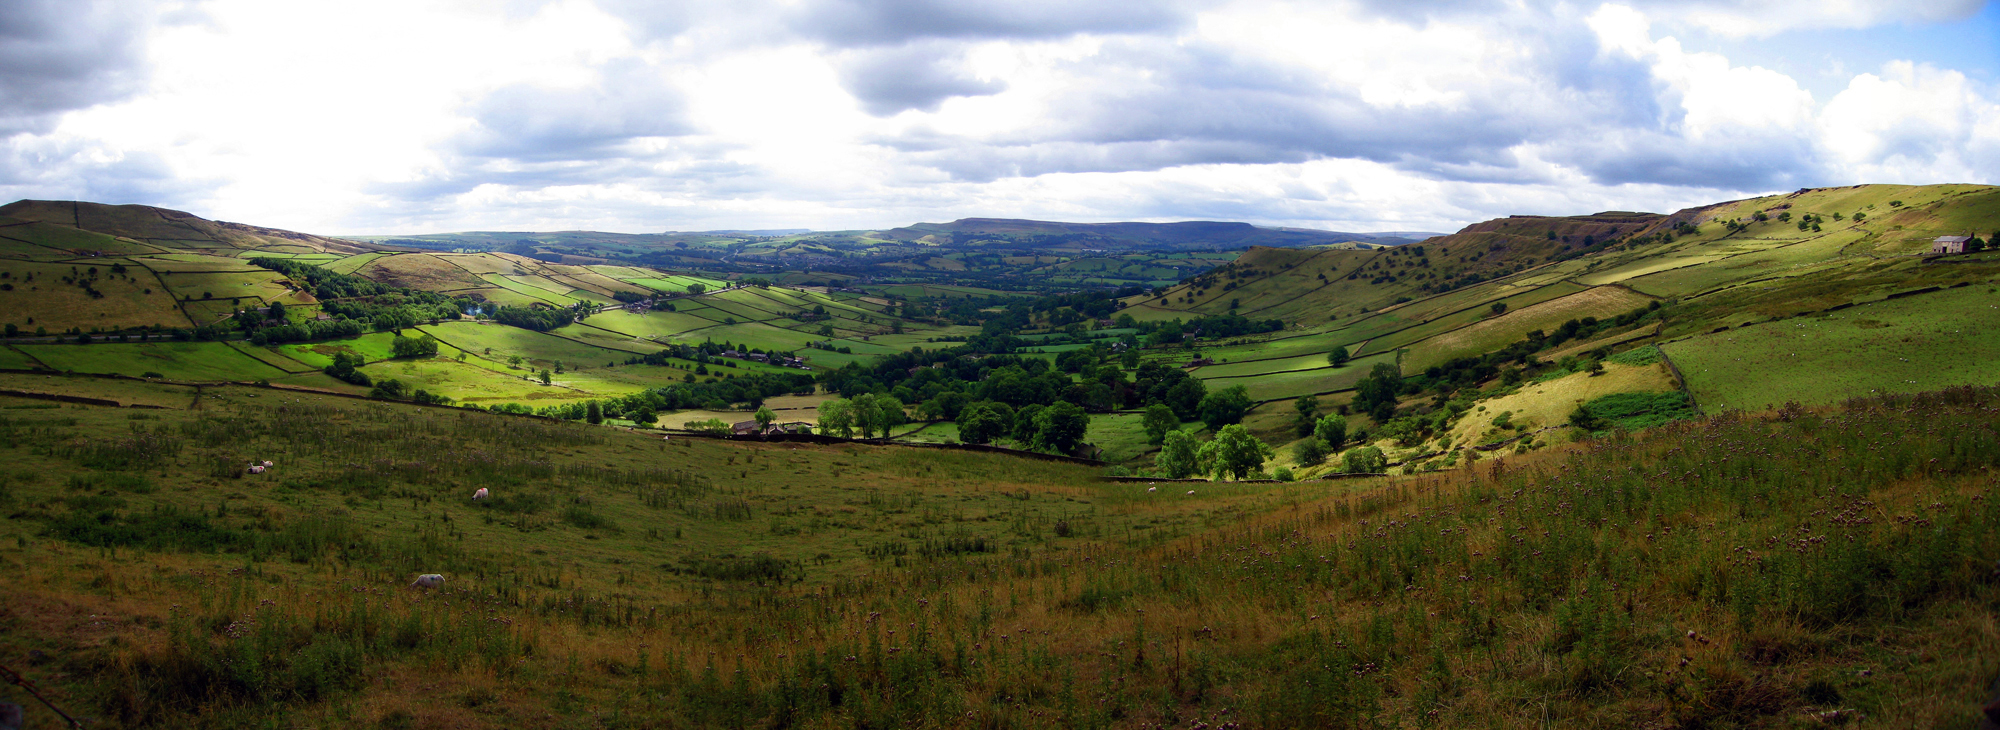 Opinions on Peak District